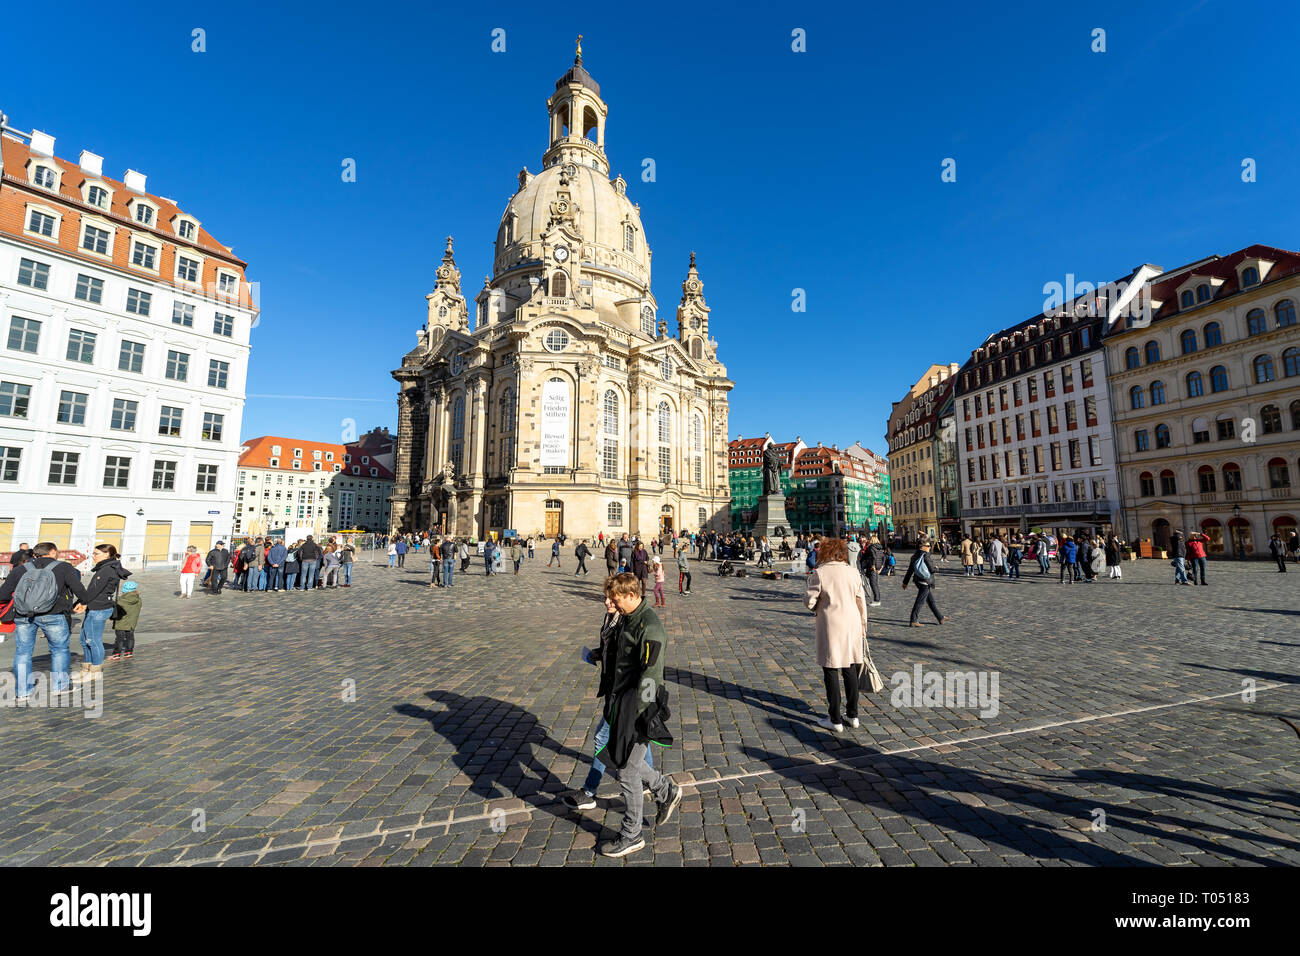 DRESDEN, GERMANY - OCTOBER 31, 2018: Neumarkt Square and